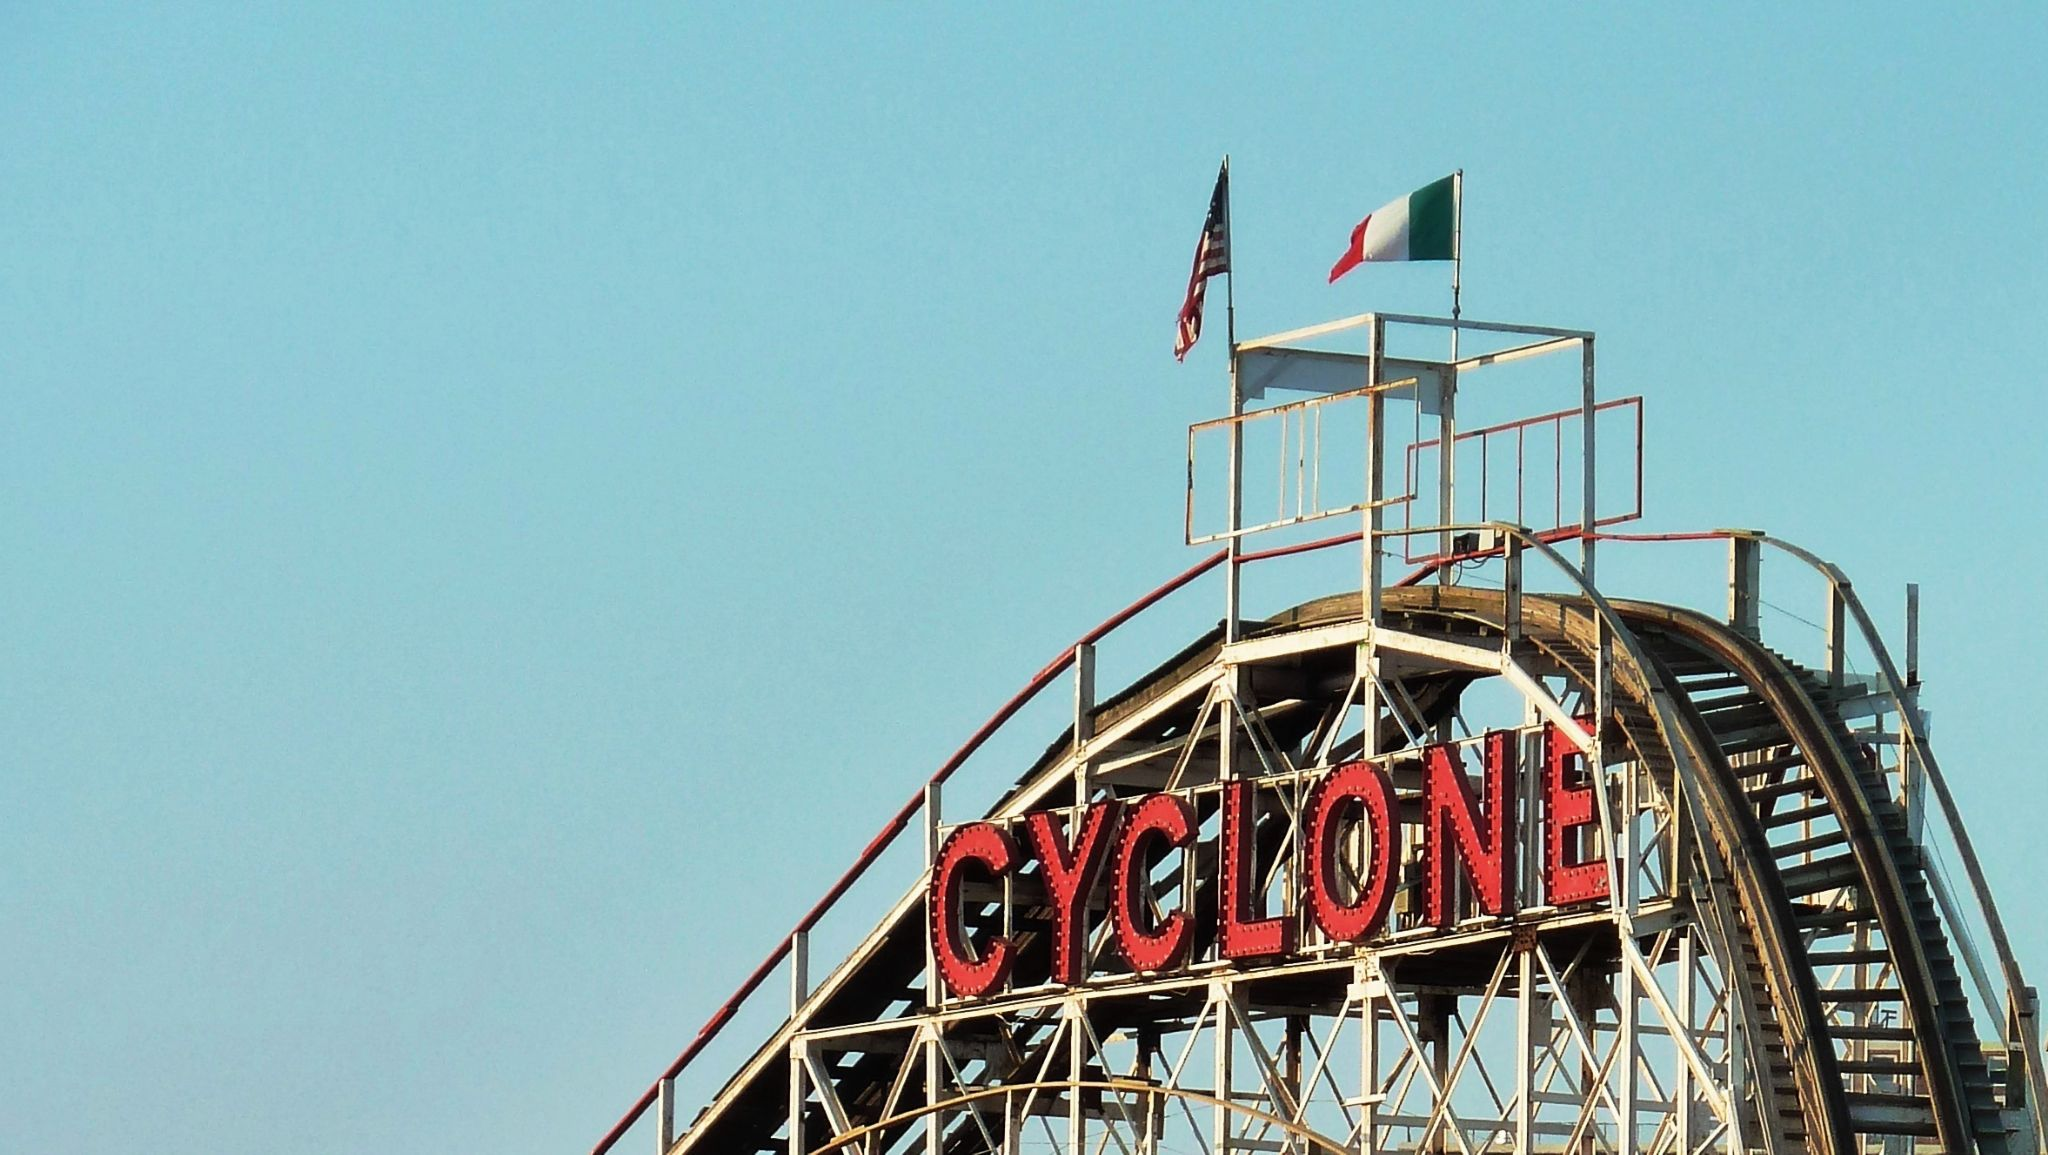 The start of the big drop.  Coney Island Icon: The Cyclone.  Still running and rattling after all th by Anton Agalbato